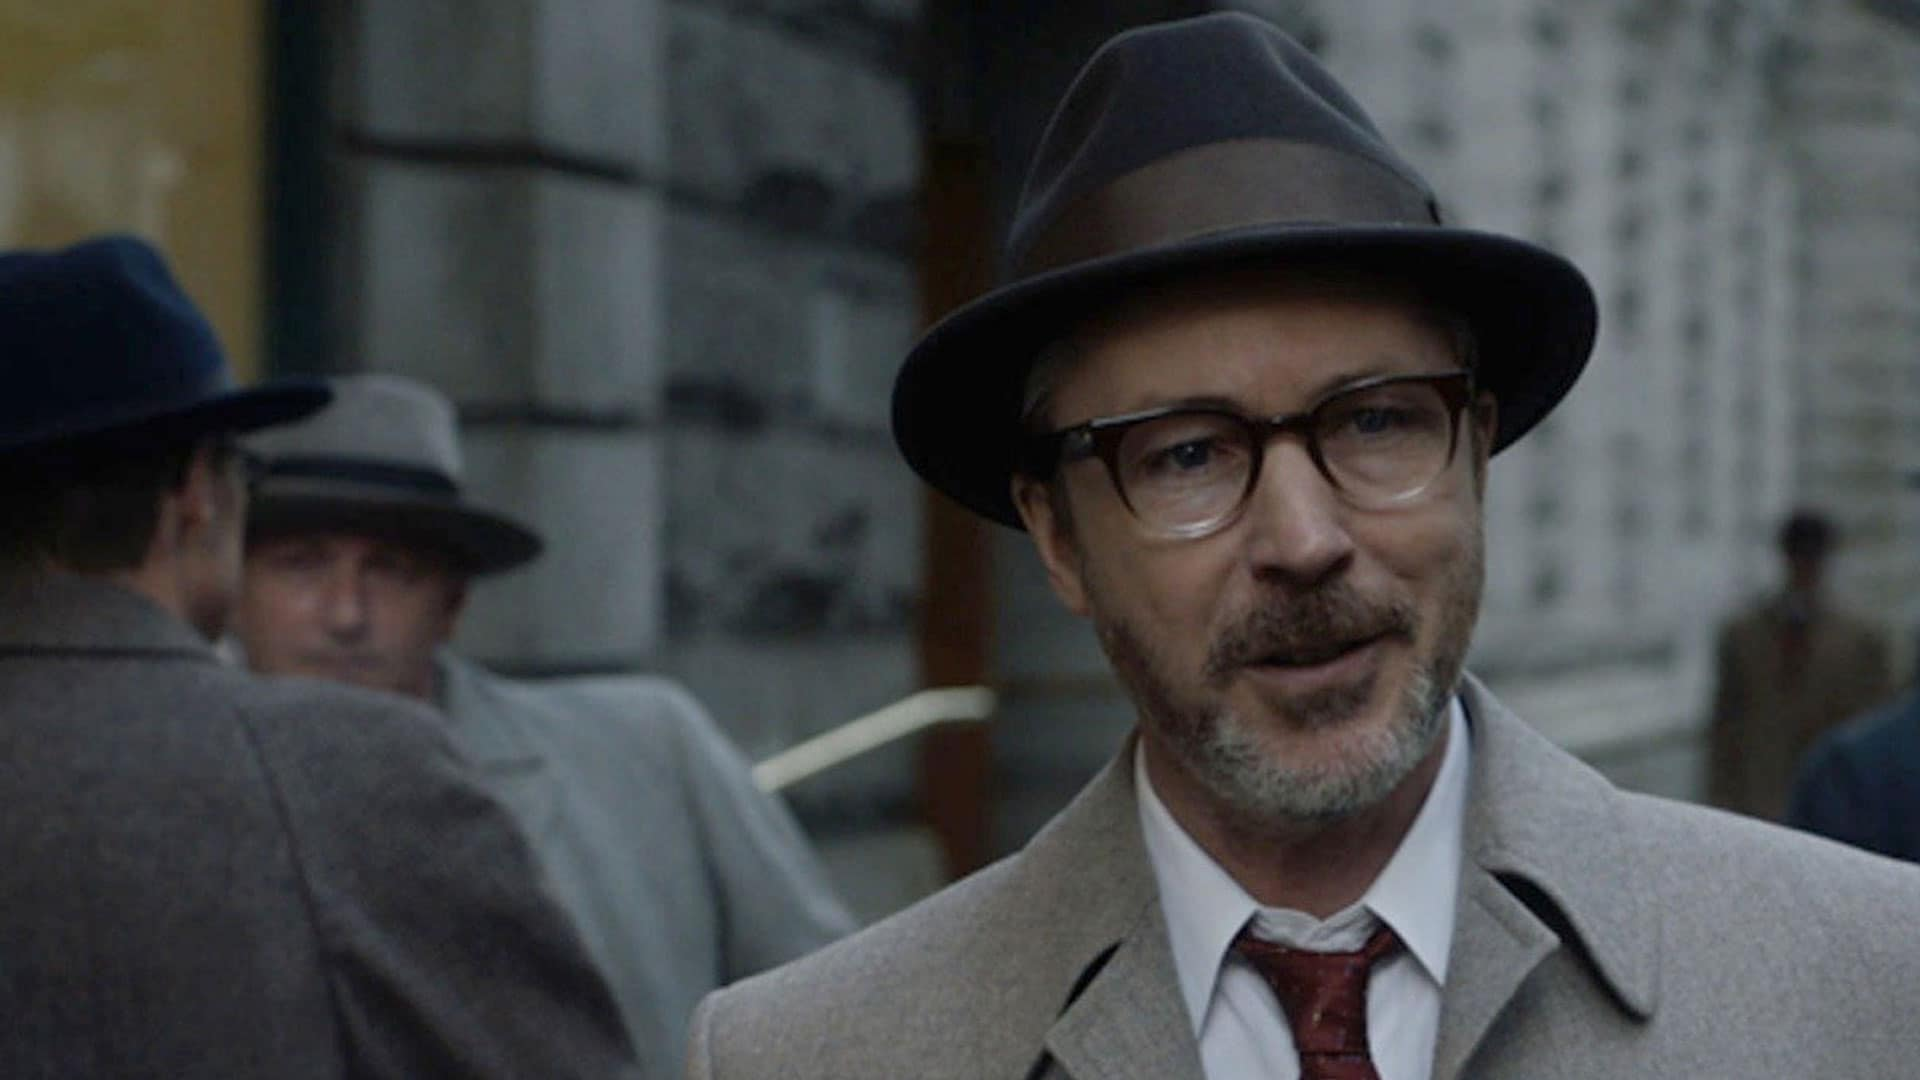 Watch Project Blue Book | Peacock